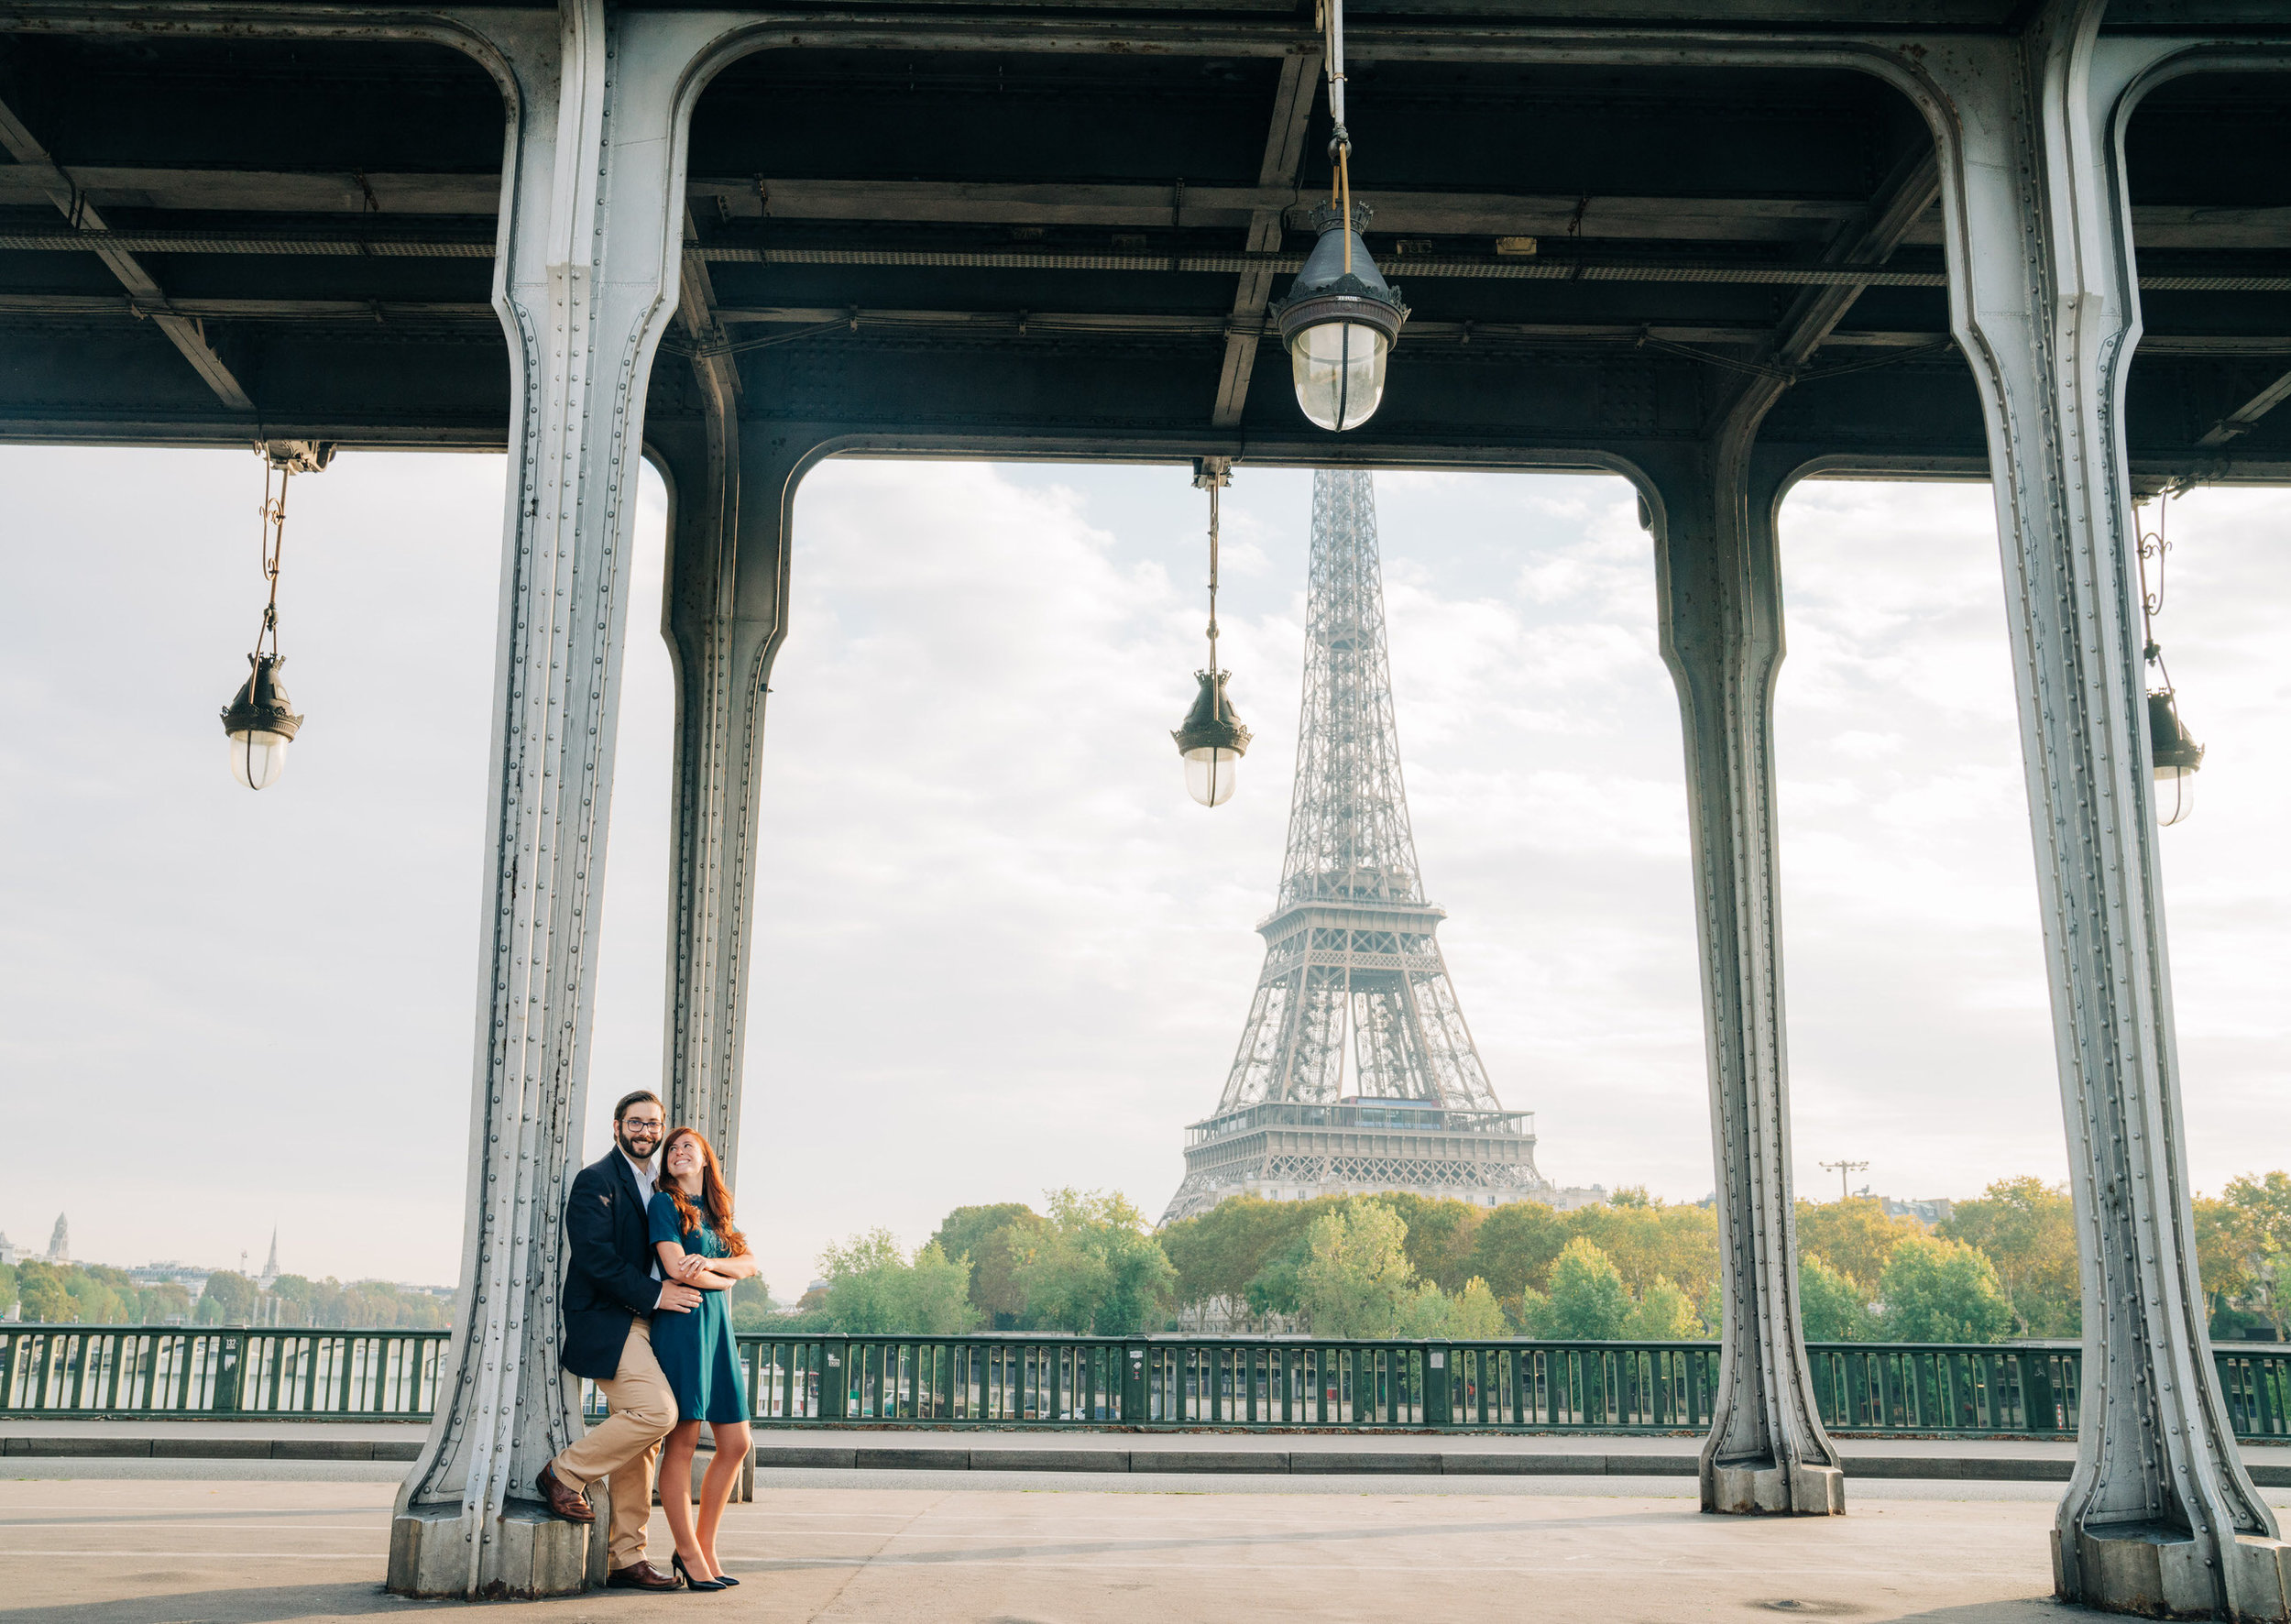 Delightful and romantic engagement session at the Eiffel Tower and Louvre